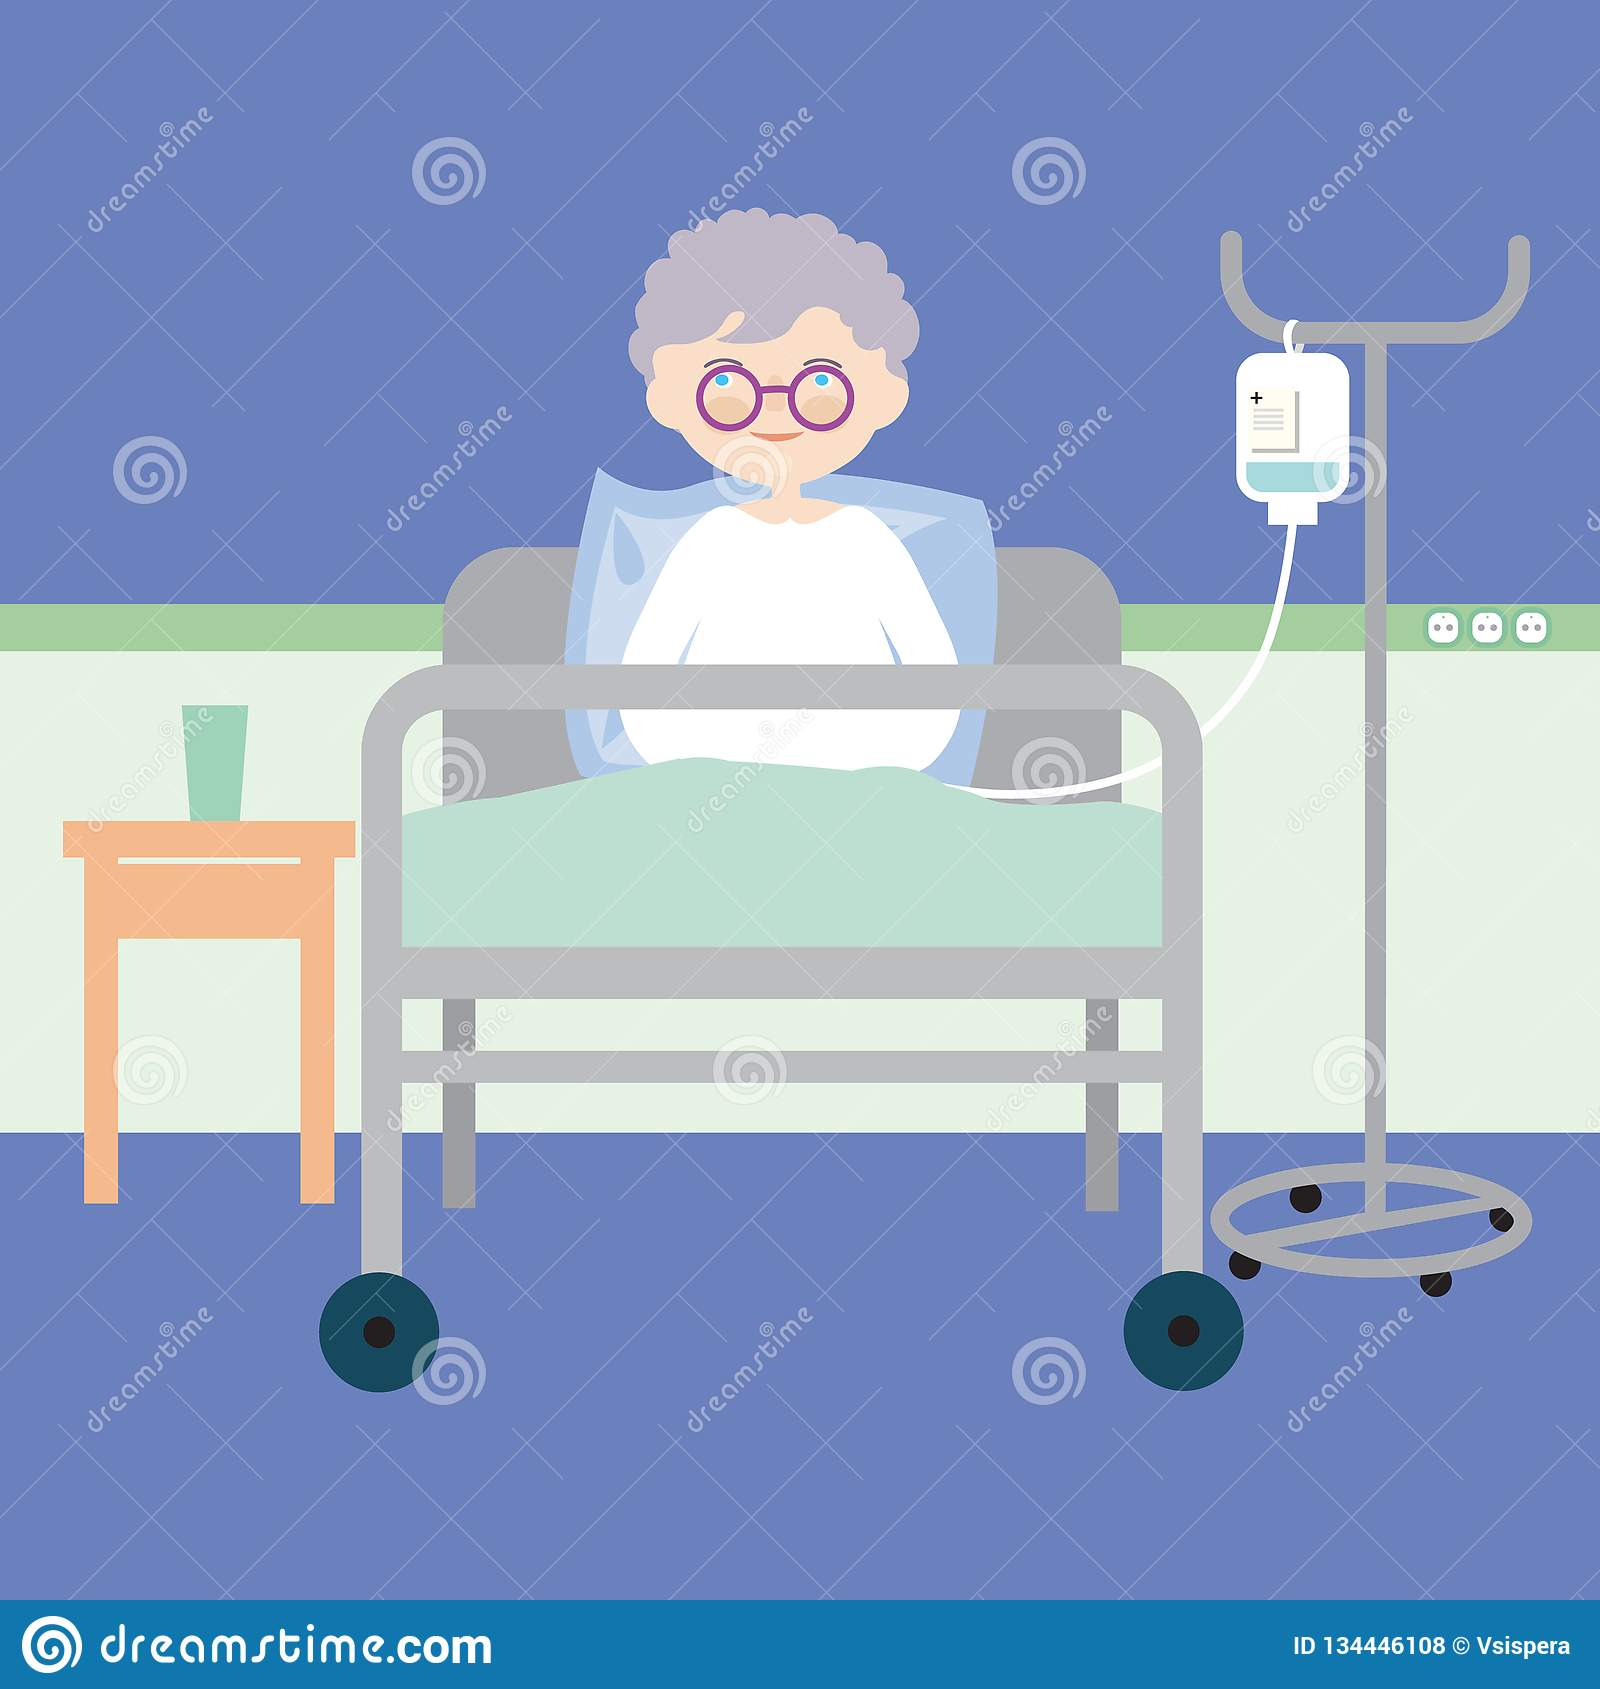 Old woman lying in bed at hospital and having an intravenous injection or artificial nutrition, vector